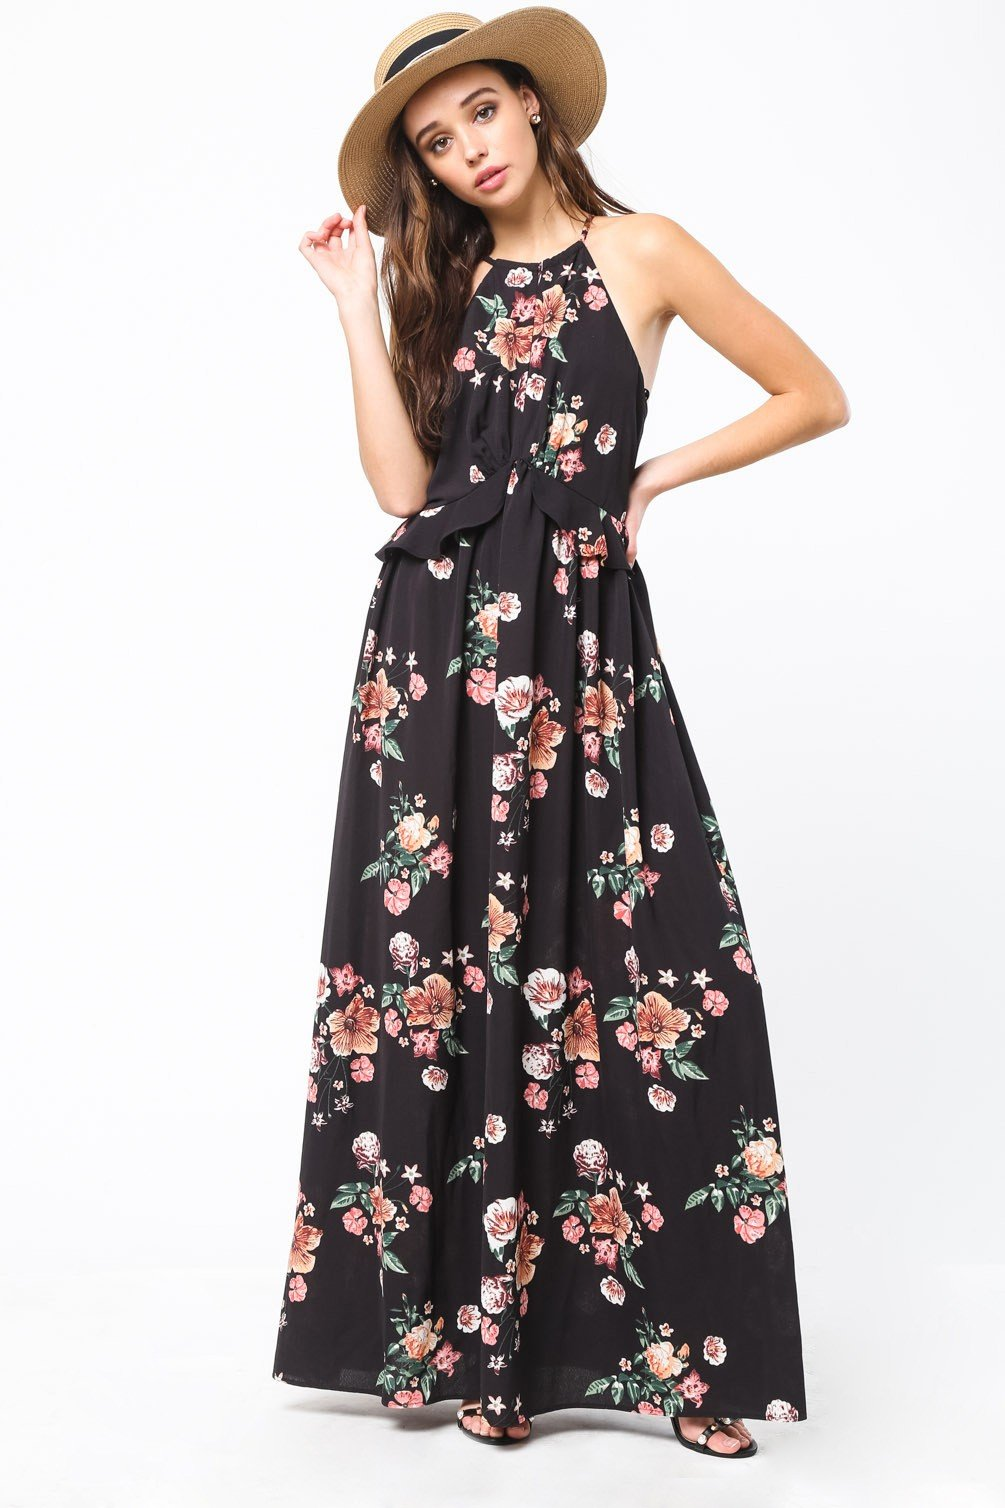 a4309630dc371b Black Floral Print Garterized Sleeve Criss Cross Maxi Dress | All Fashion |  Dresses, Floral prints, Formal dresses